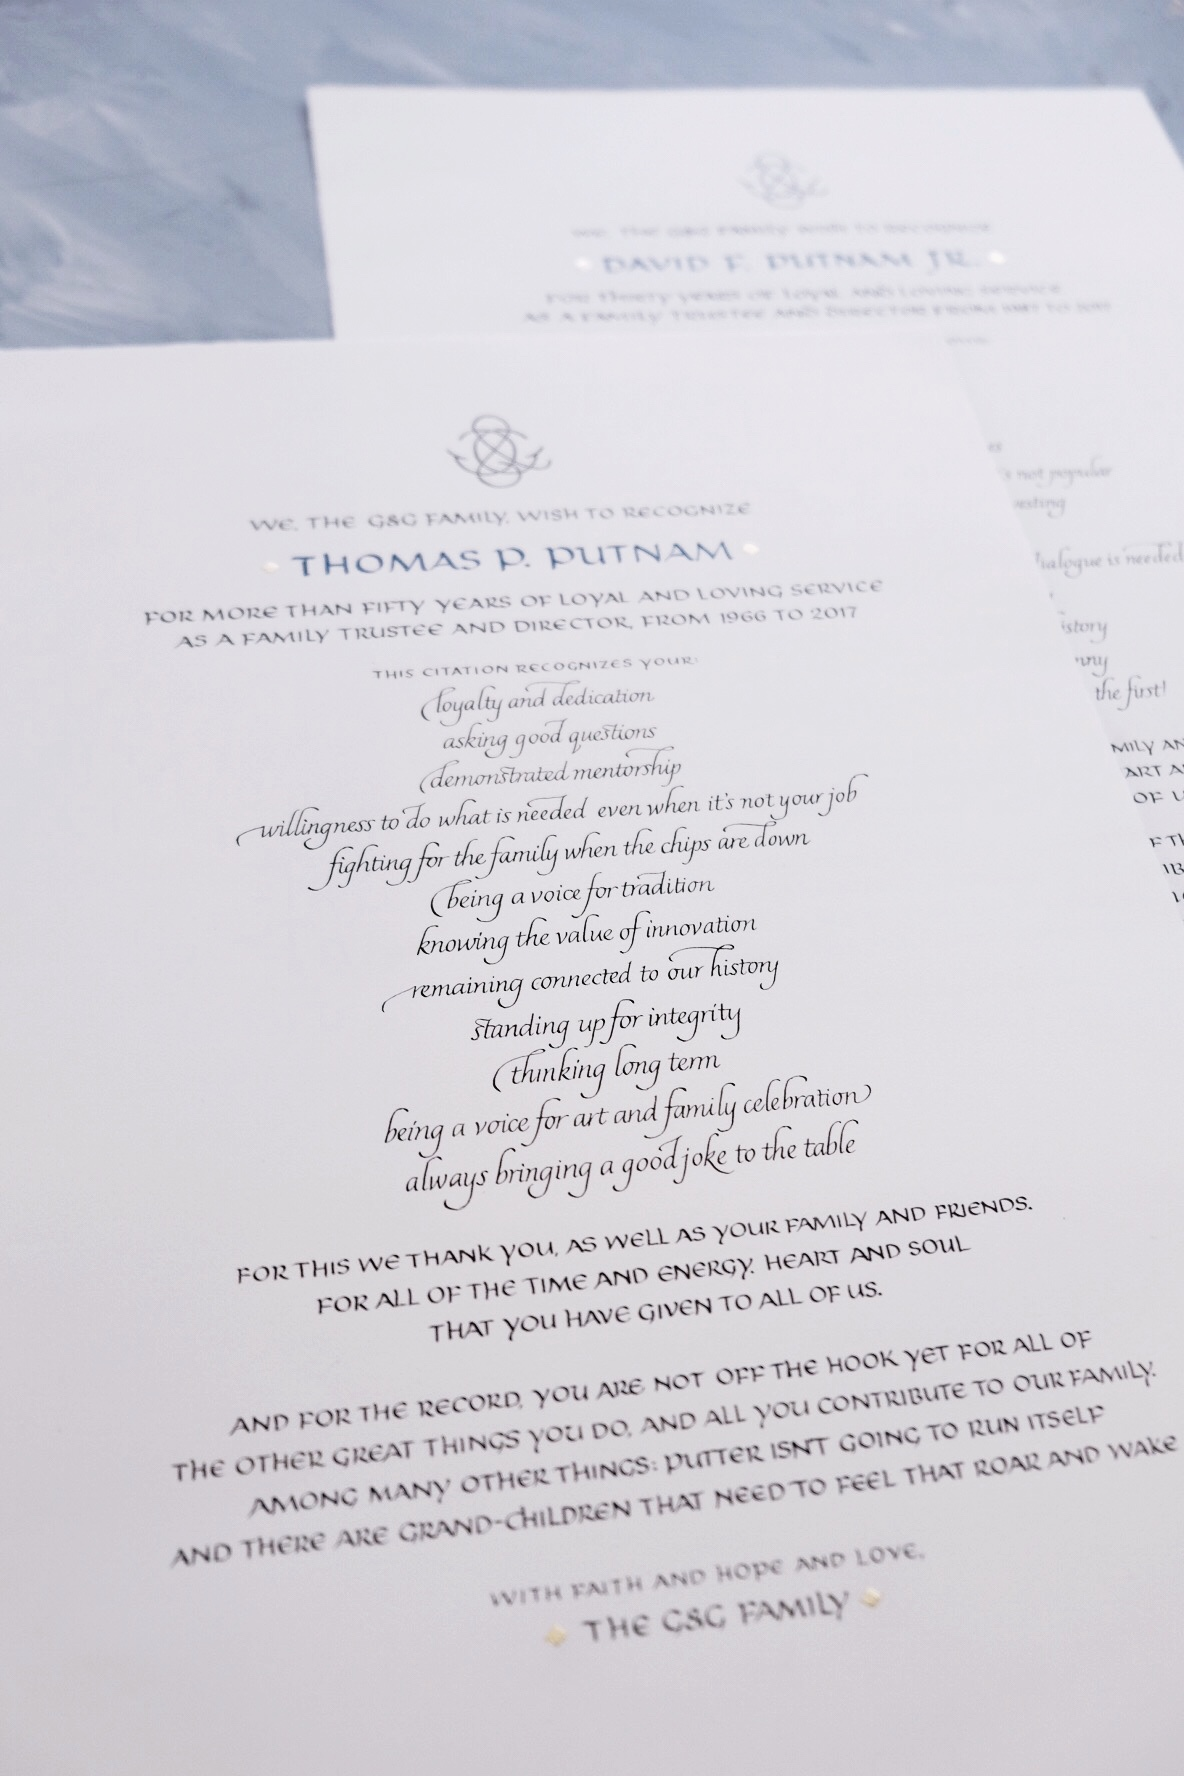 Custom Certificate of Recognition in uncial and italic calligraphy | design and calligraphy by Chavelli www.chavelli.com